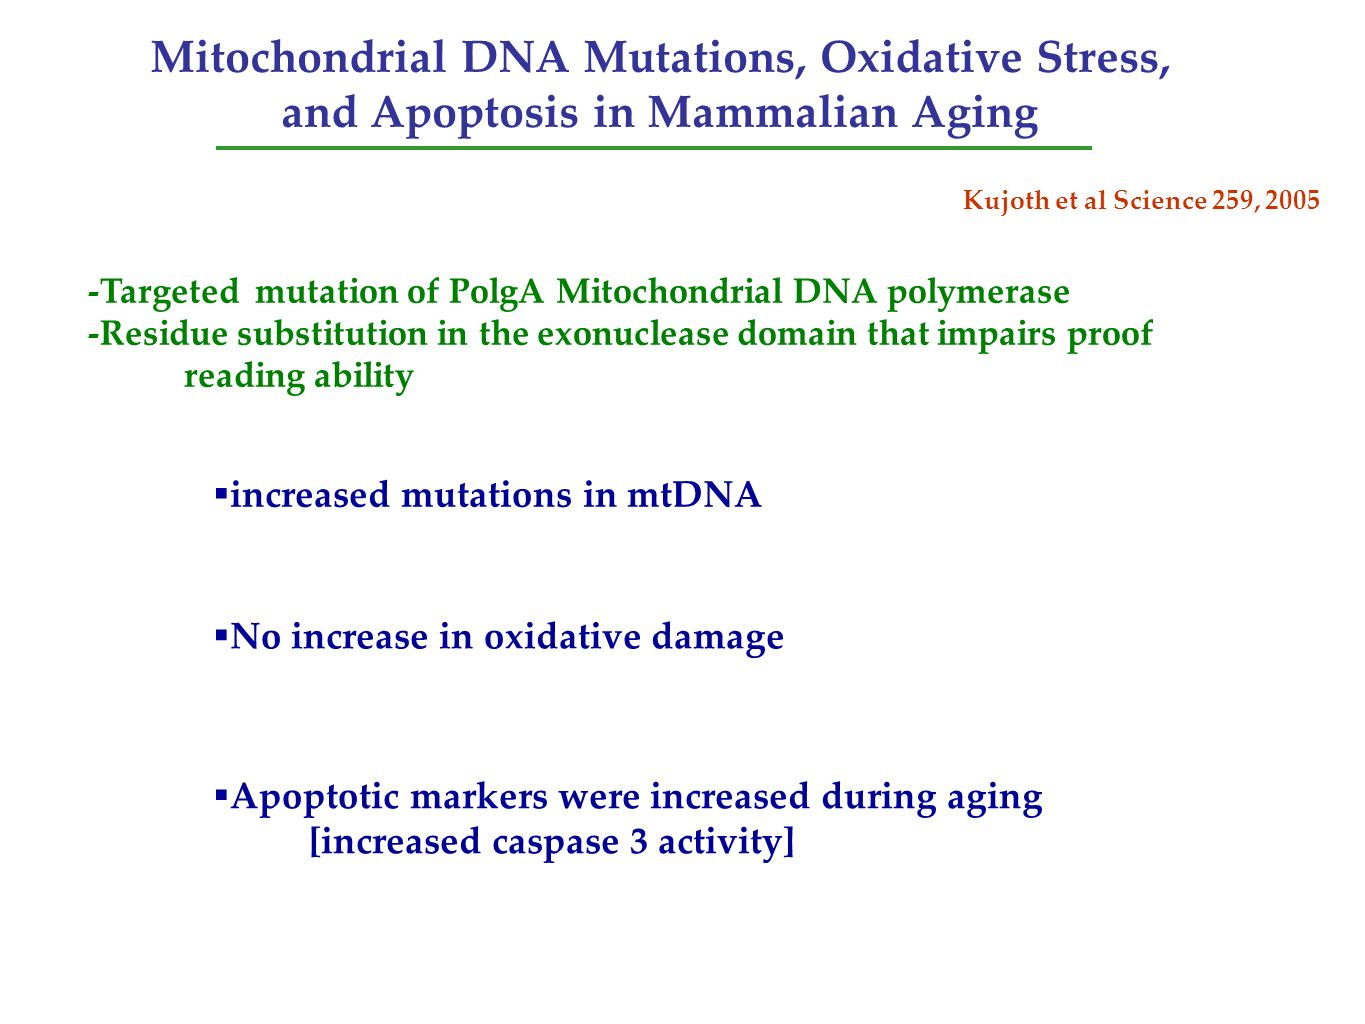 Mitochondrial DNA Mutations, Oxidative Stress, and Apoptosis in Mammalian Aging